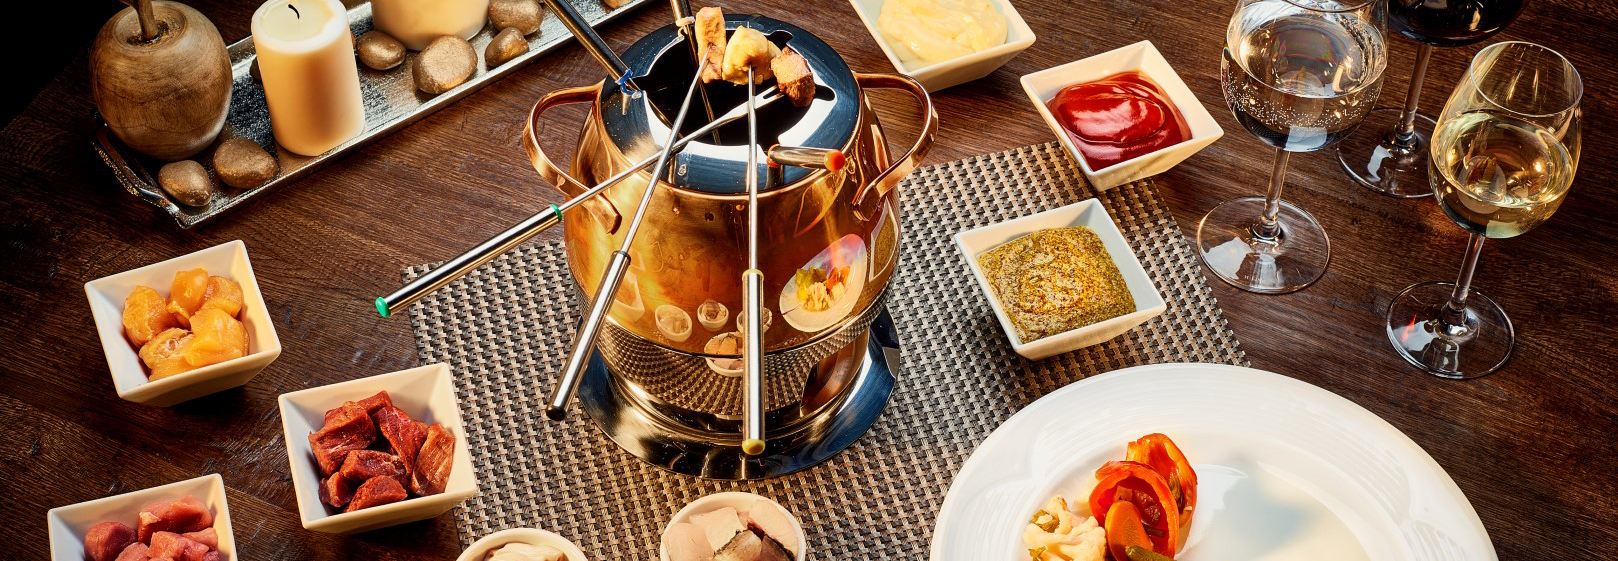 Fondue with oil